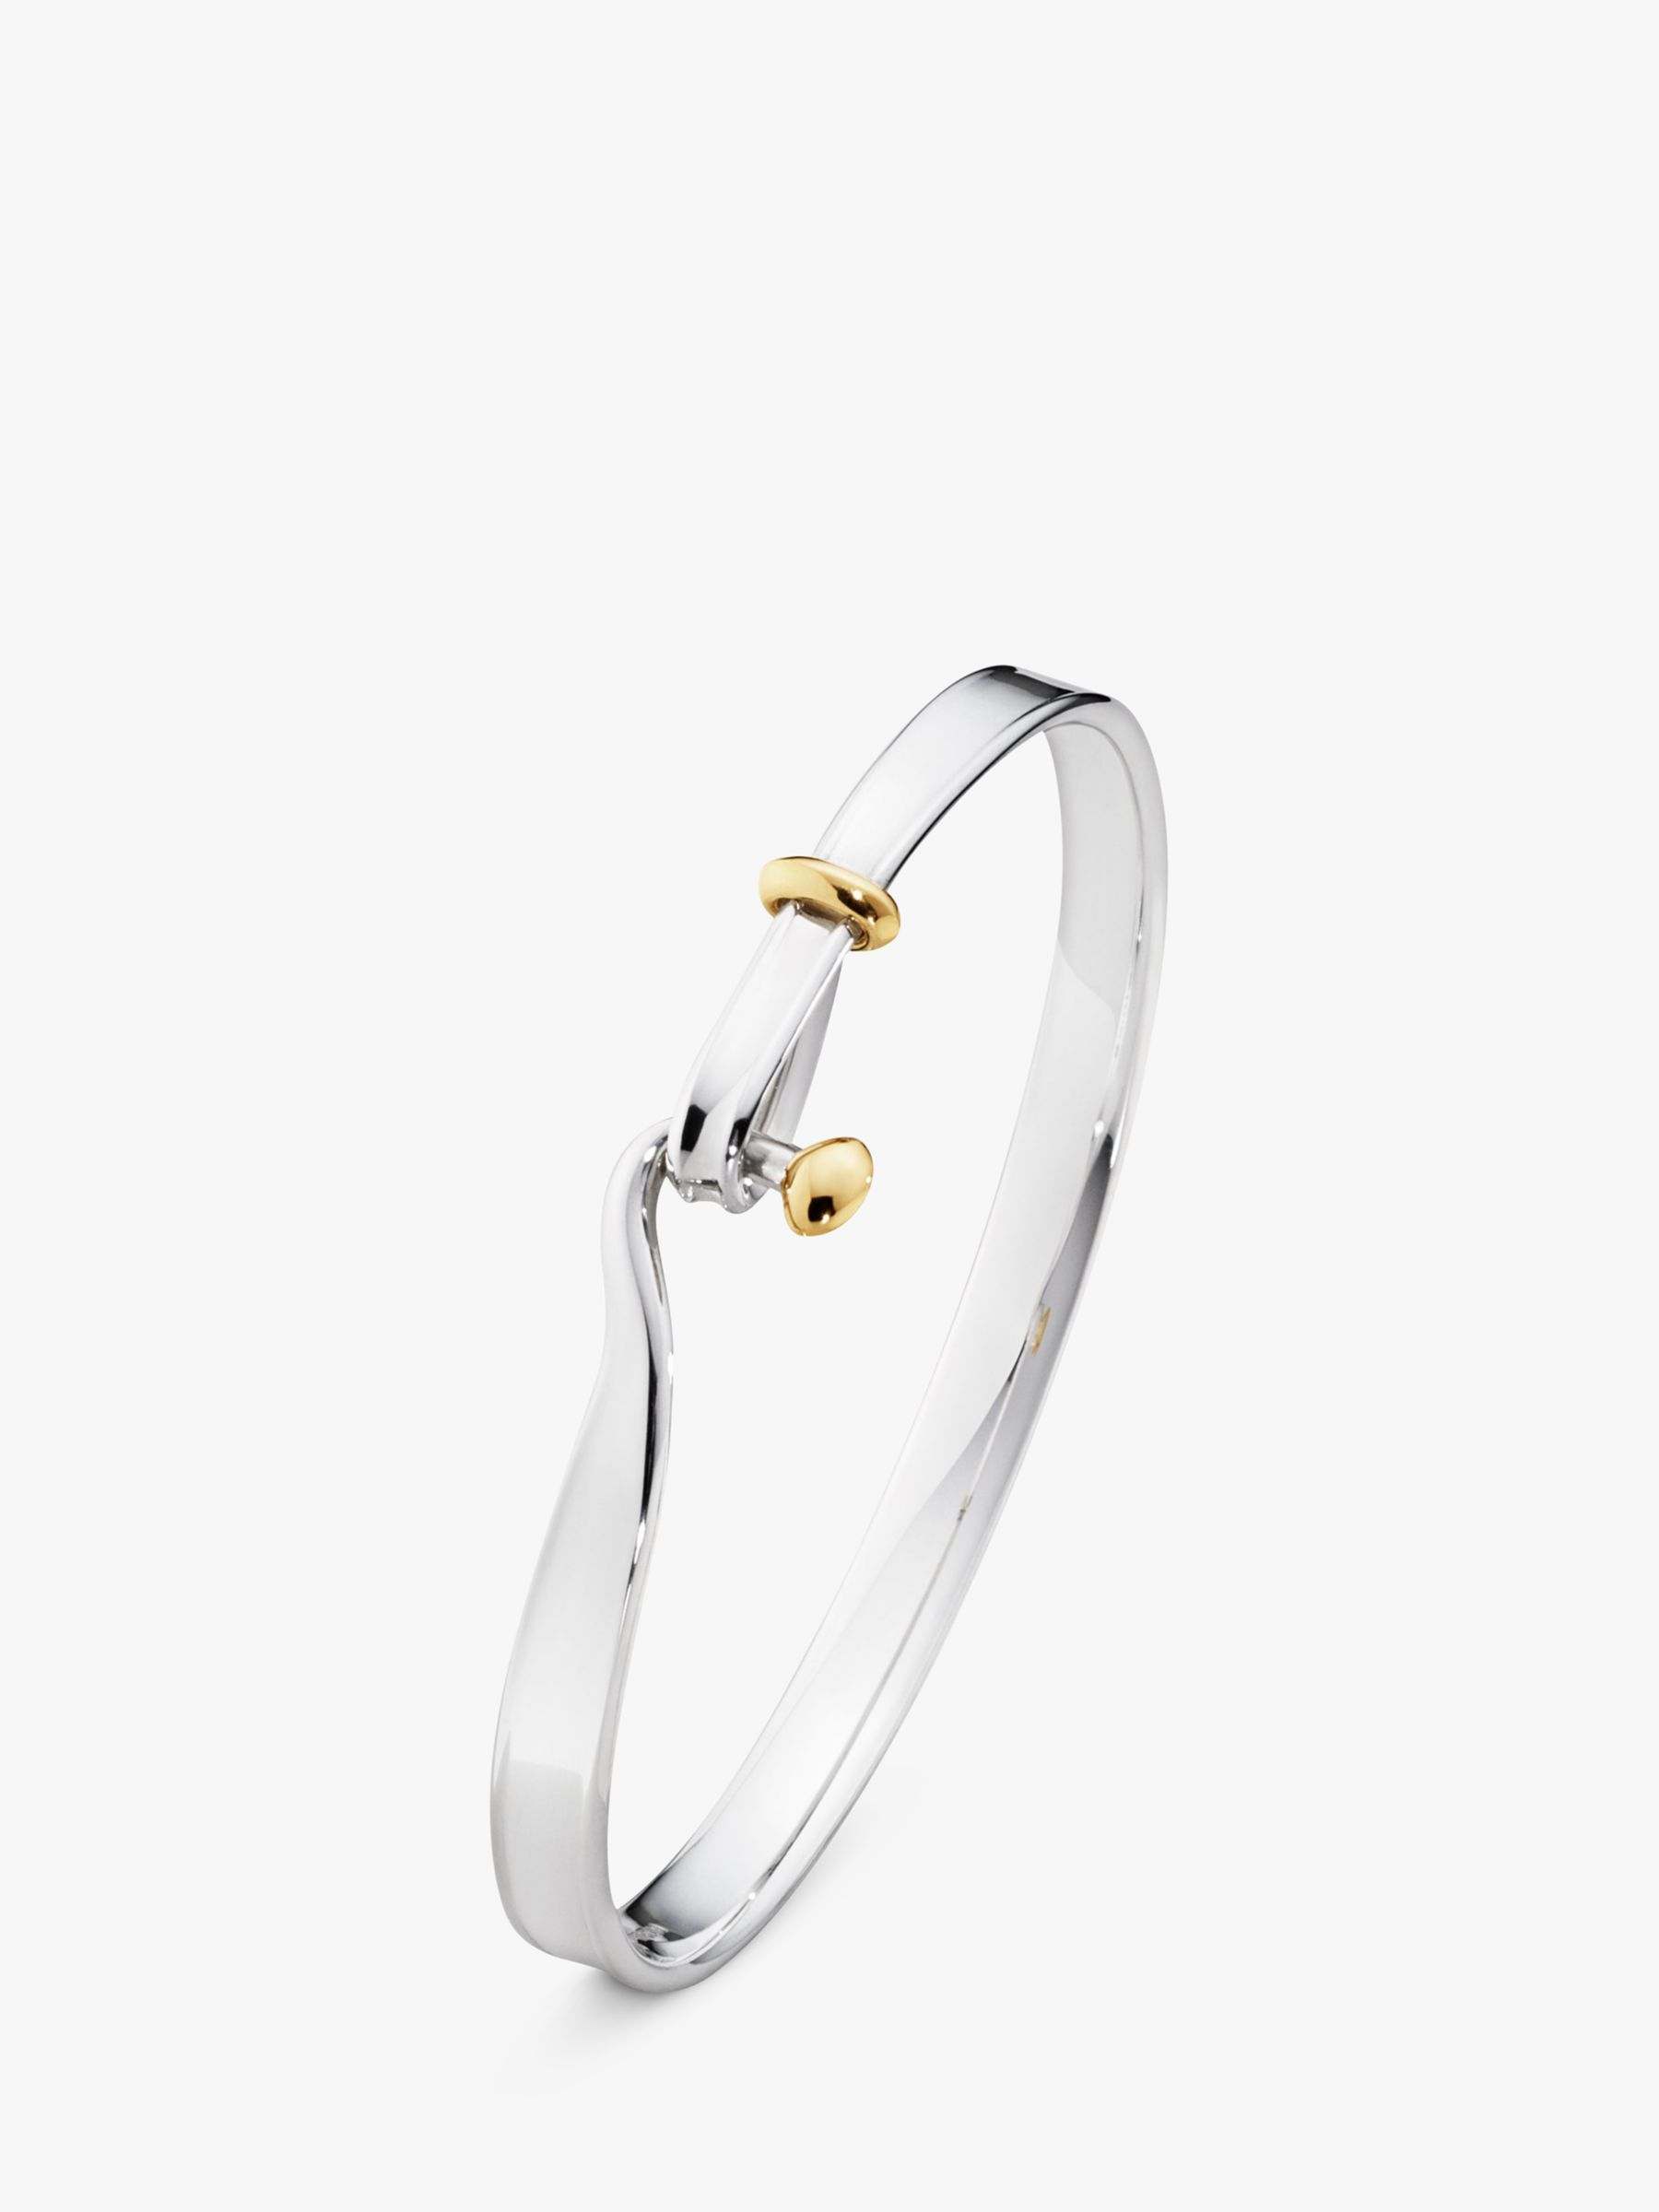 Georg Jensen Georg Jensen Torun Bangle, Silver/Gold